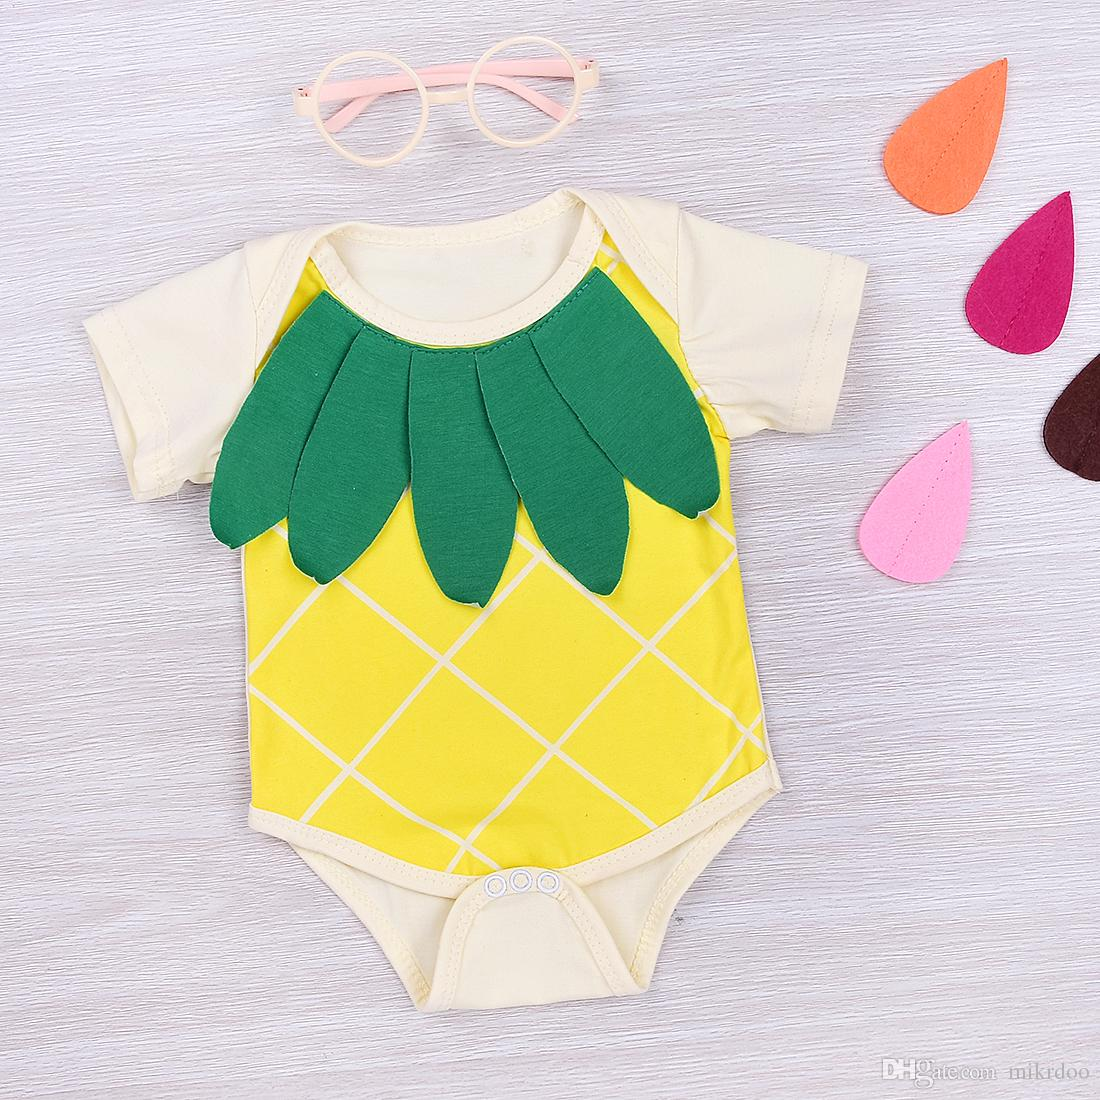 3e43b3ebecd 2019 Mikrdoo Funny Baby Boy Girls Clothes Cute Yellow Romper Cotton Fruit  Pineapple Short Sleeve Jumpsuit Cartoon Kids Casual Playsuit For 0 18M From  ...